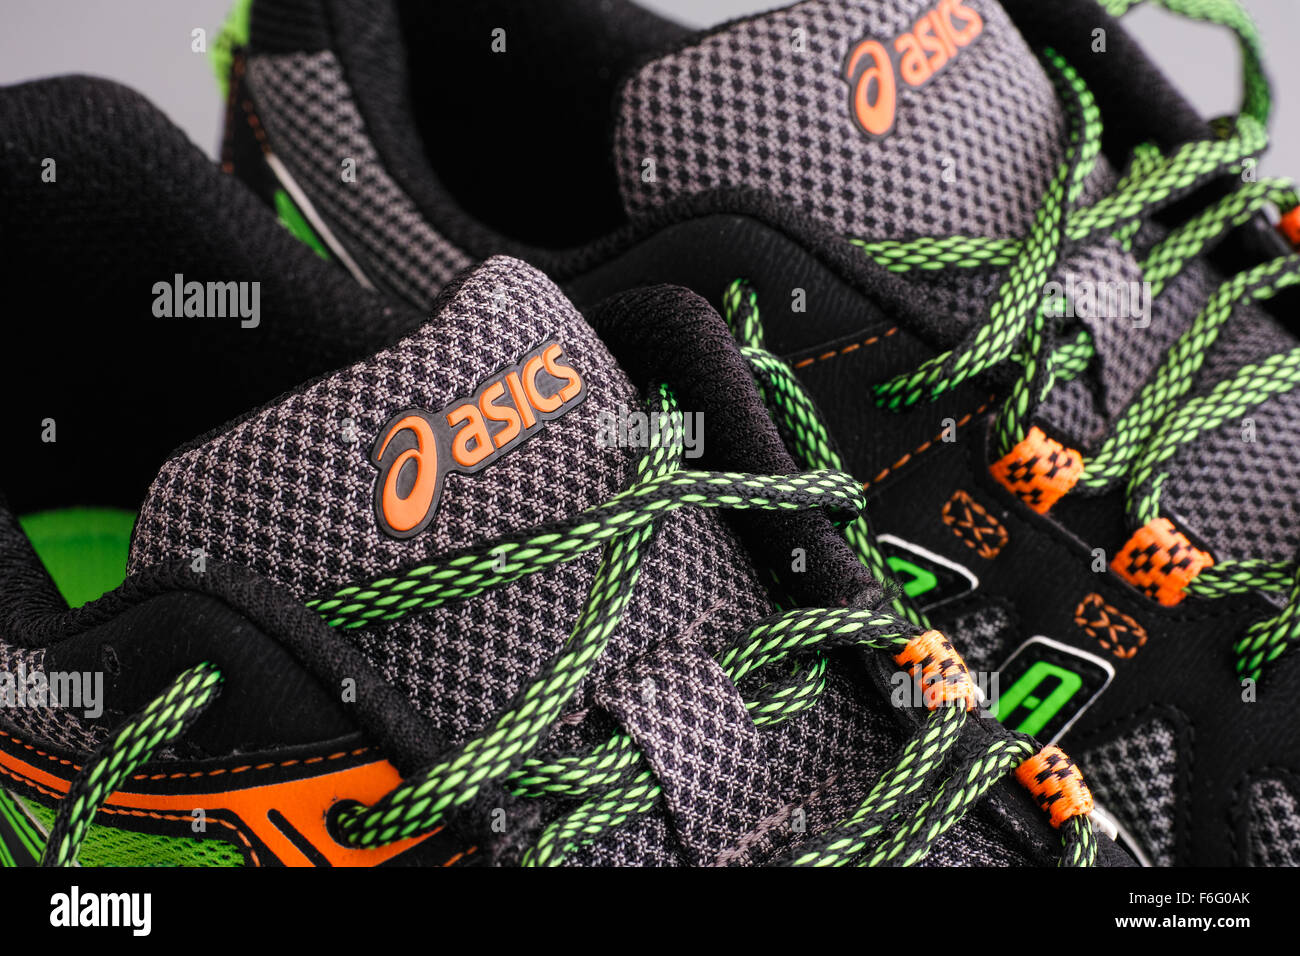 Tambov, Russian Federation - September 17, 2015 Asics snickers. Close-up. Studio shot. - Stock Image